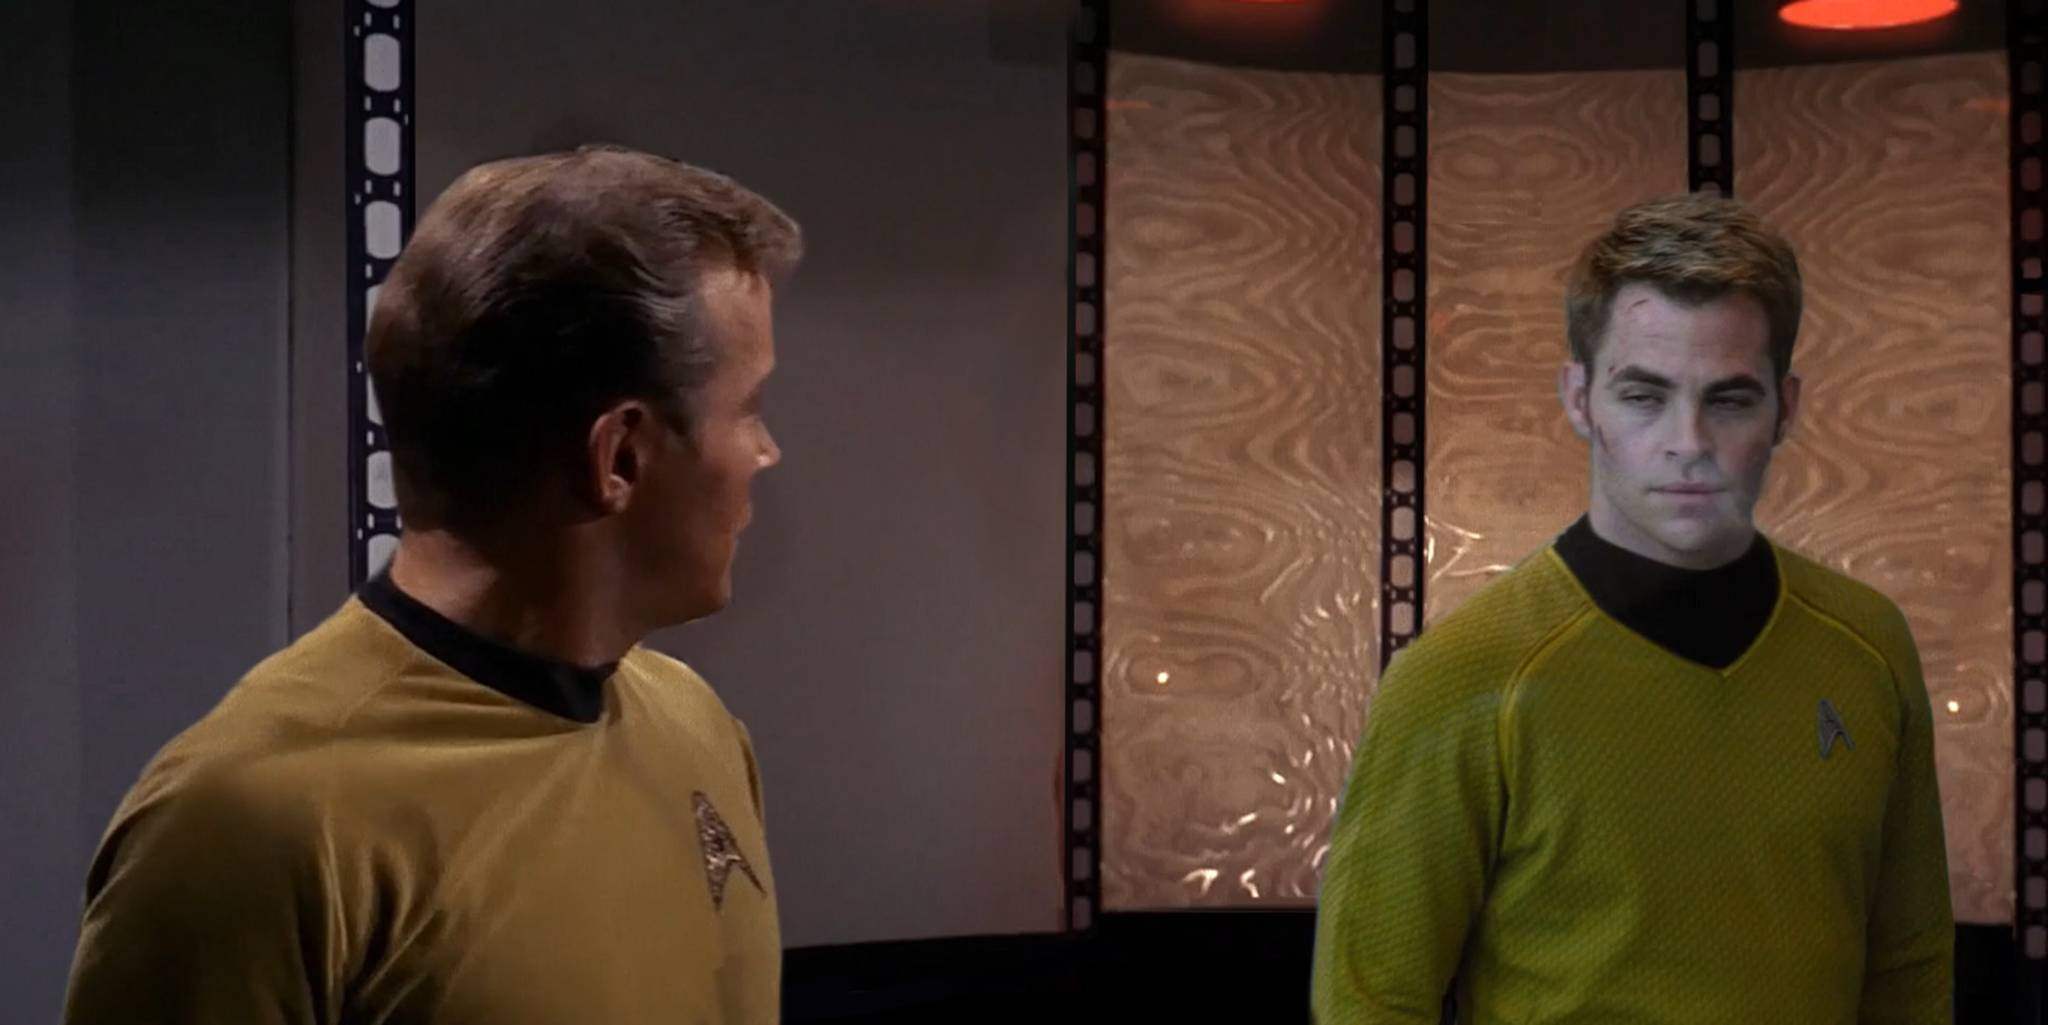 'Star Trek: The Original Series' gets a delightful modern mashup